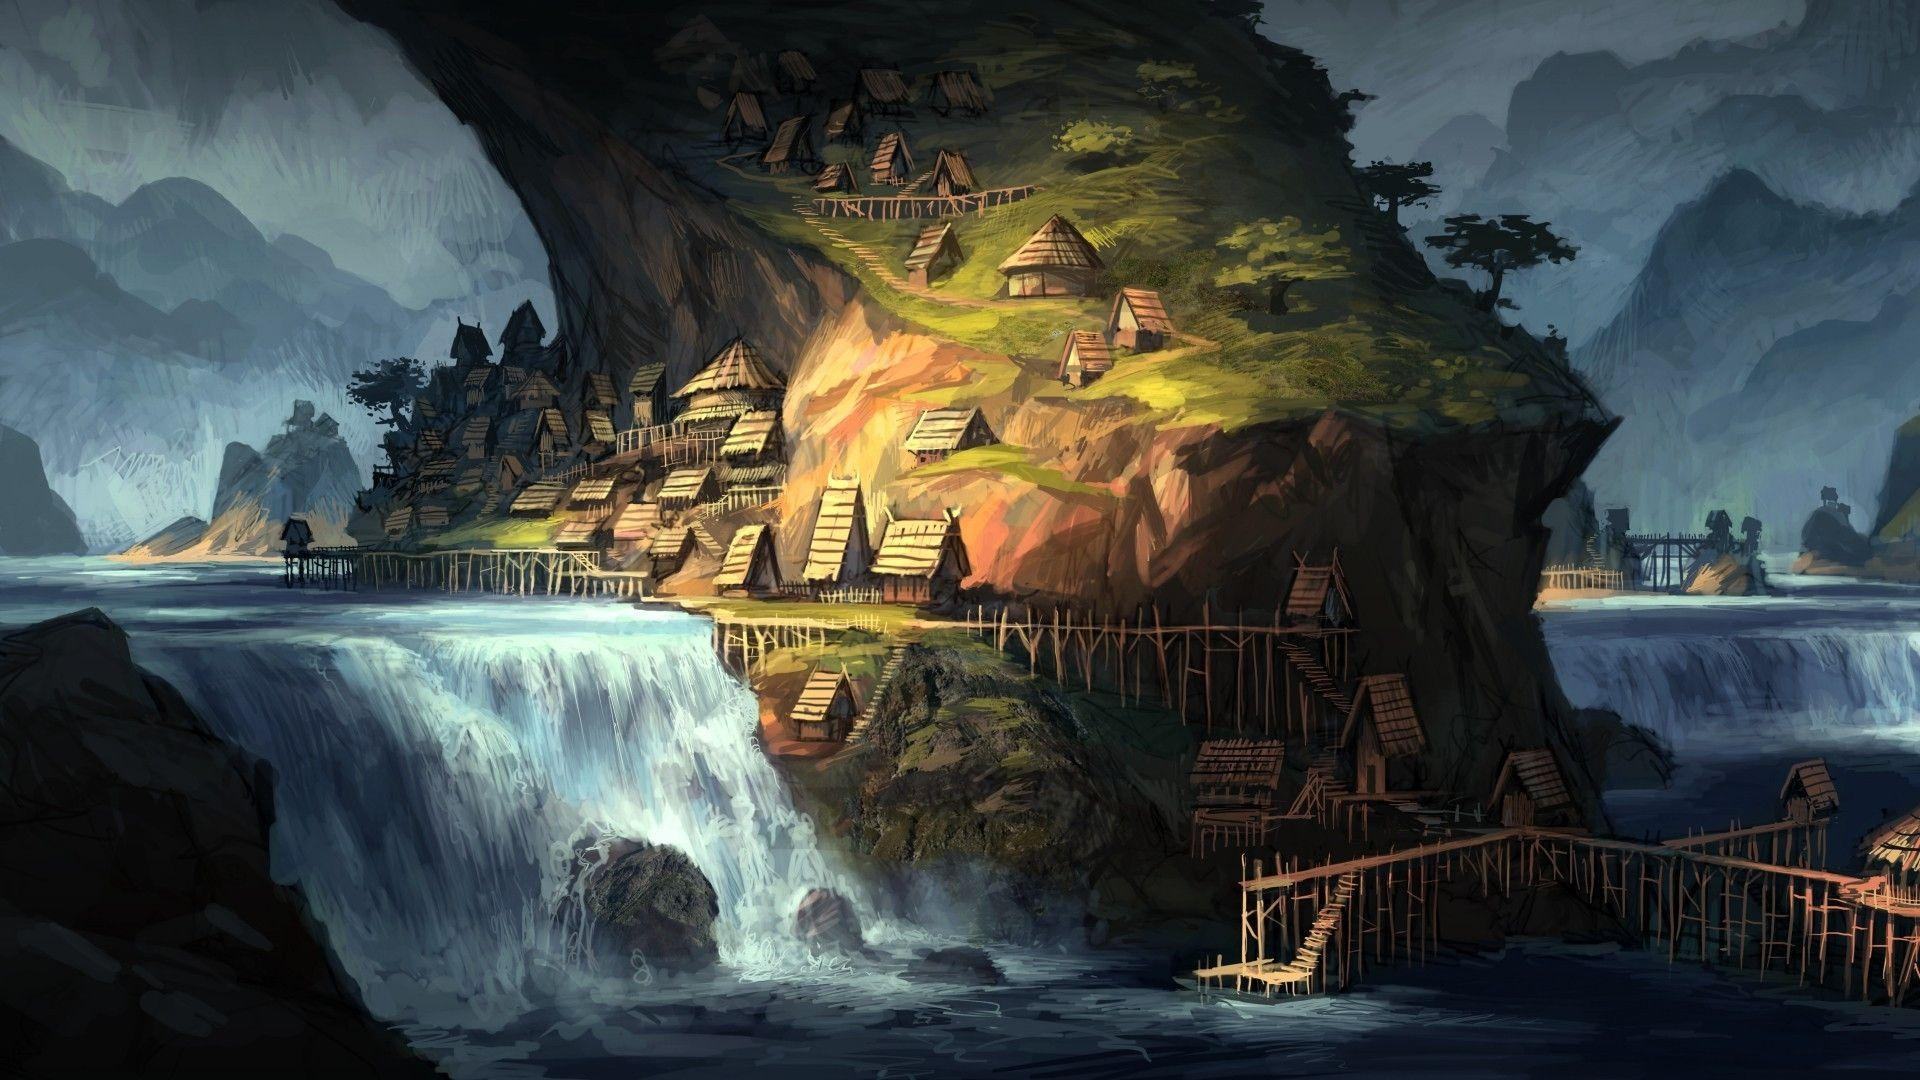 Download Wallpapers, Download 1920x1080 water fantasy art artwork